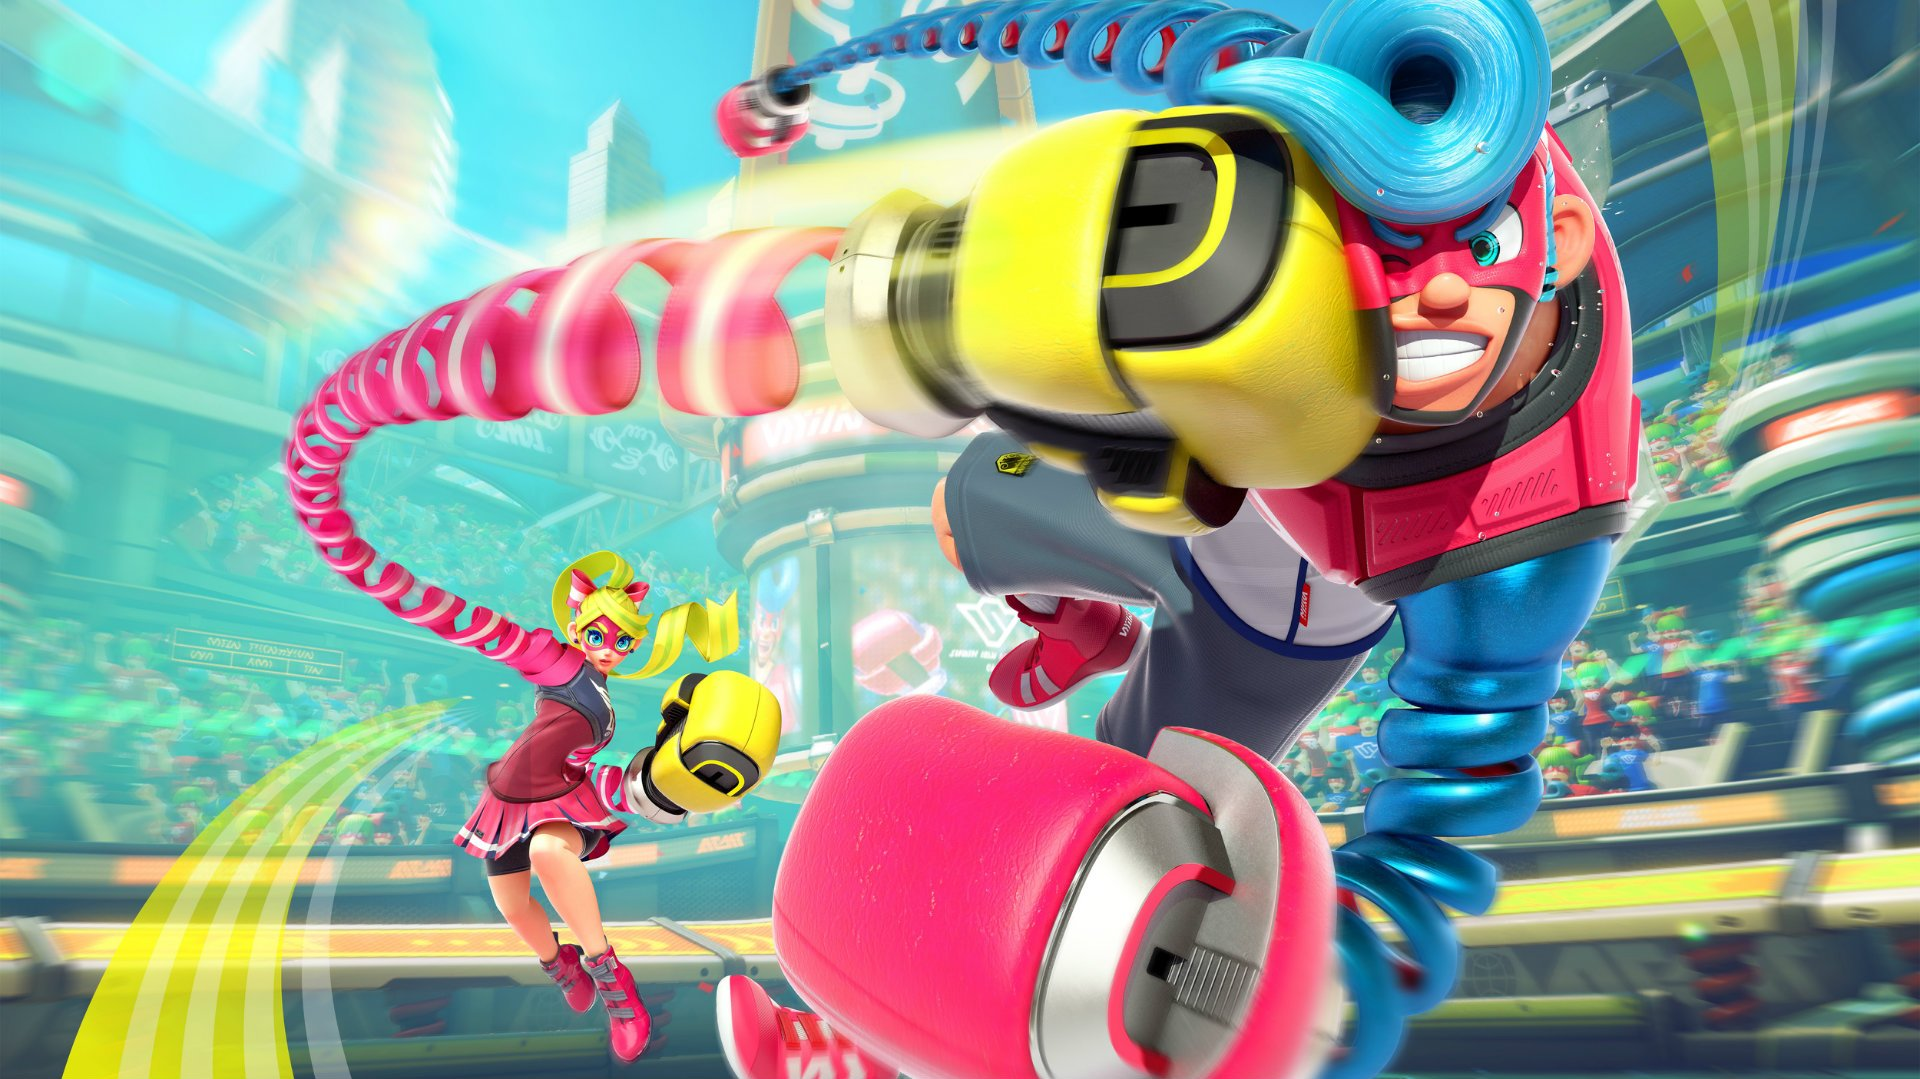 Modojo | Arms - Everything We Know So Far